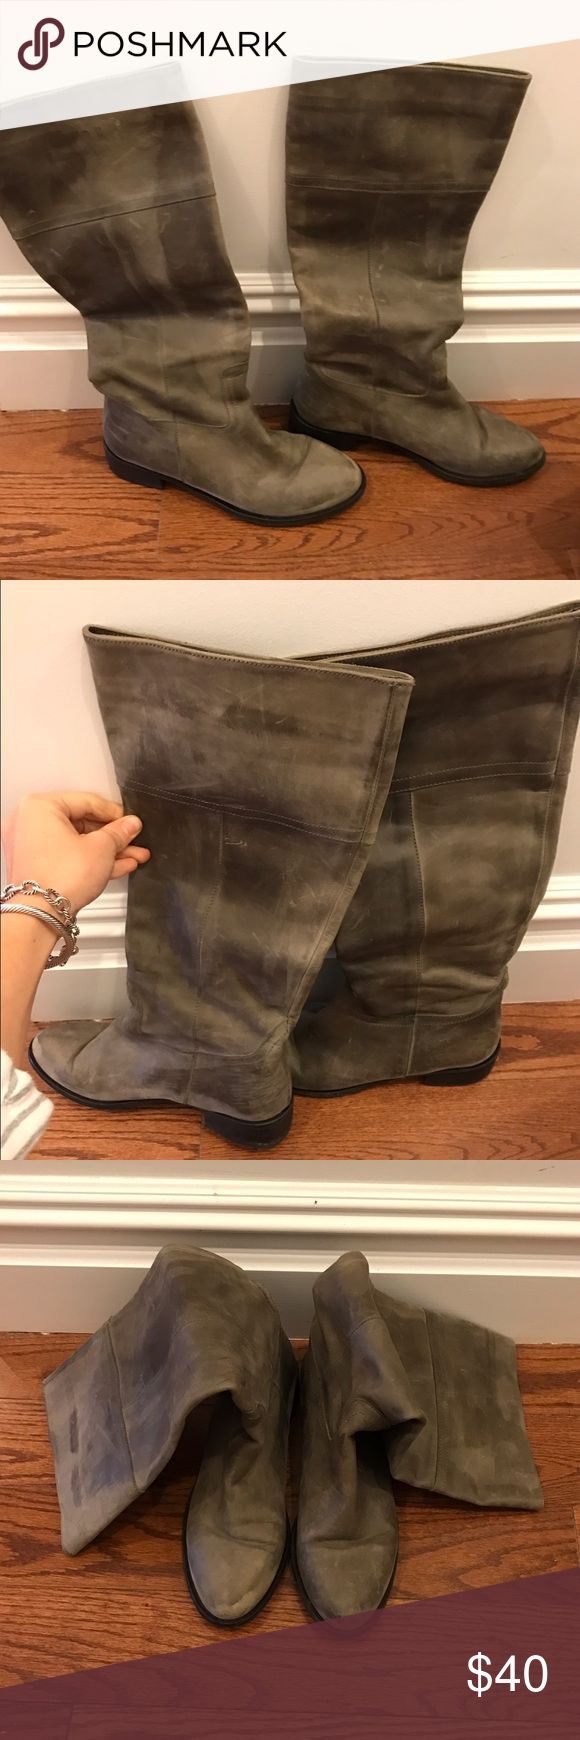 Charles David gray riding boots Gray leather riding boots with minor signs of wear Charles David Shoes